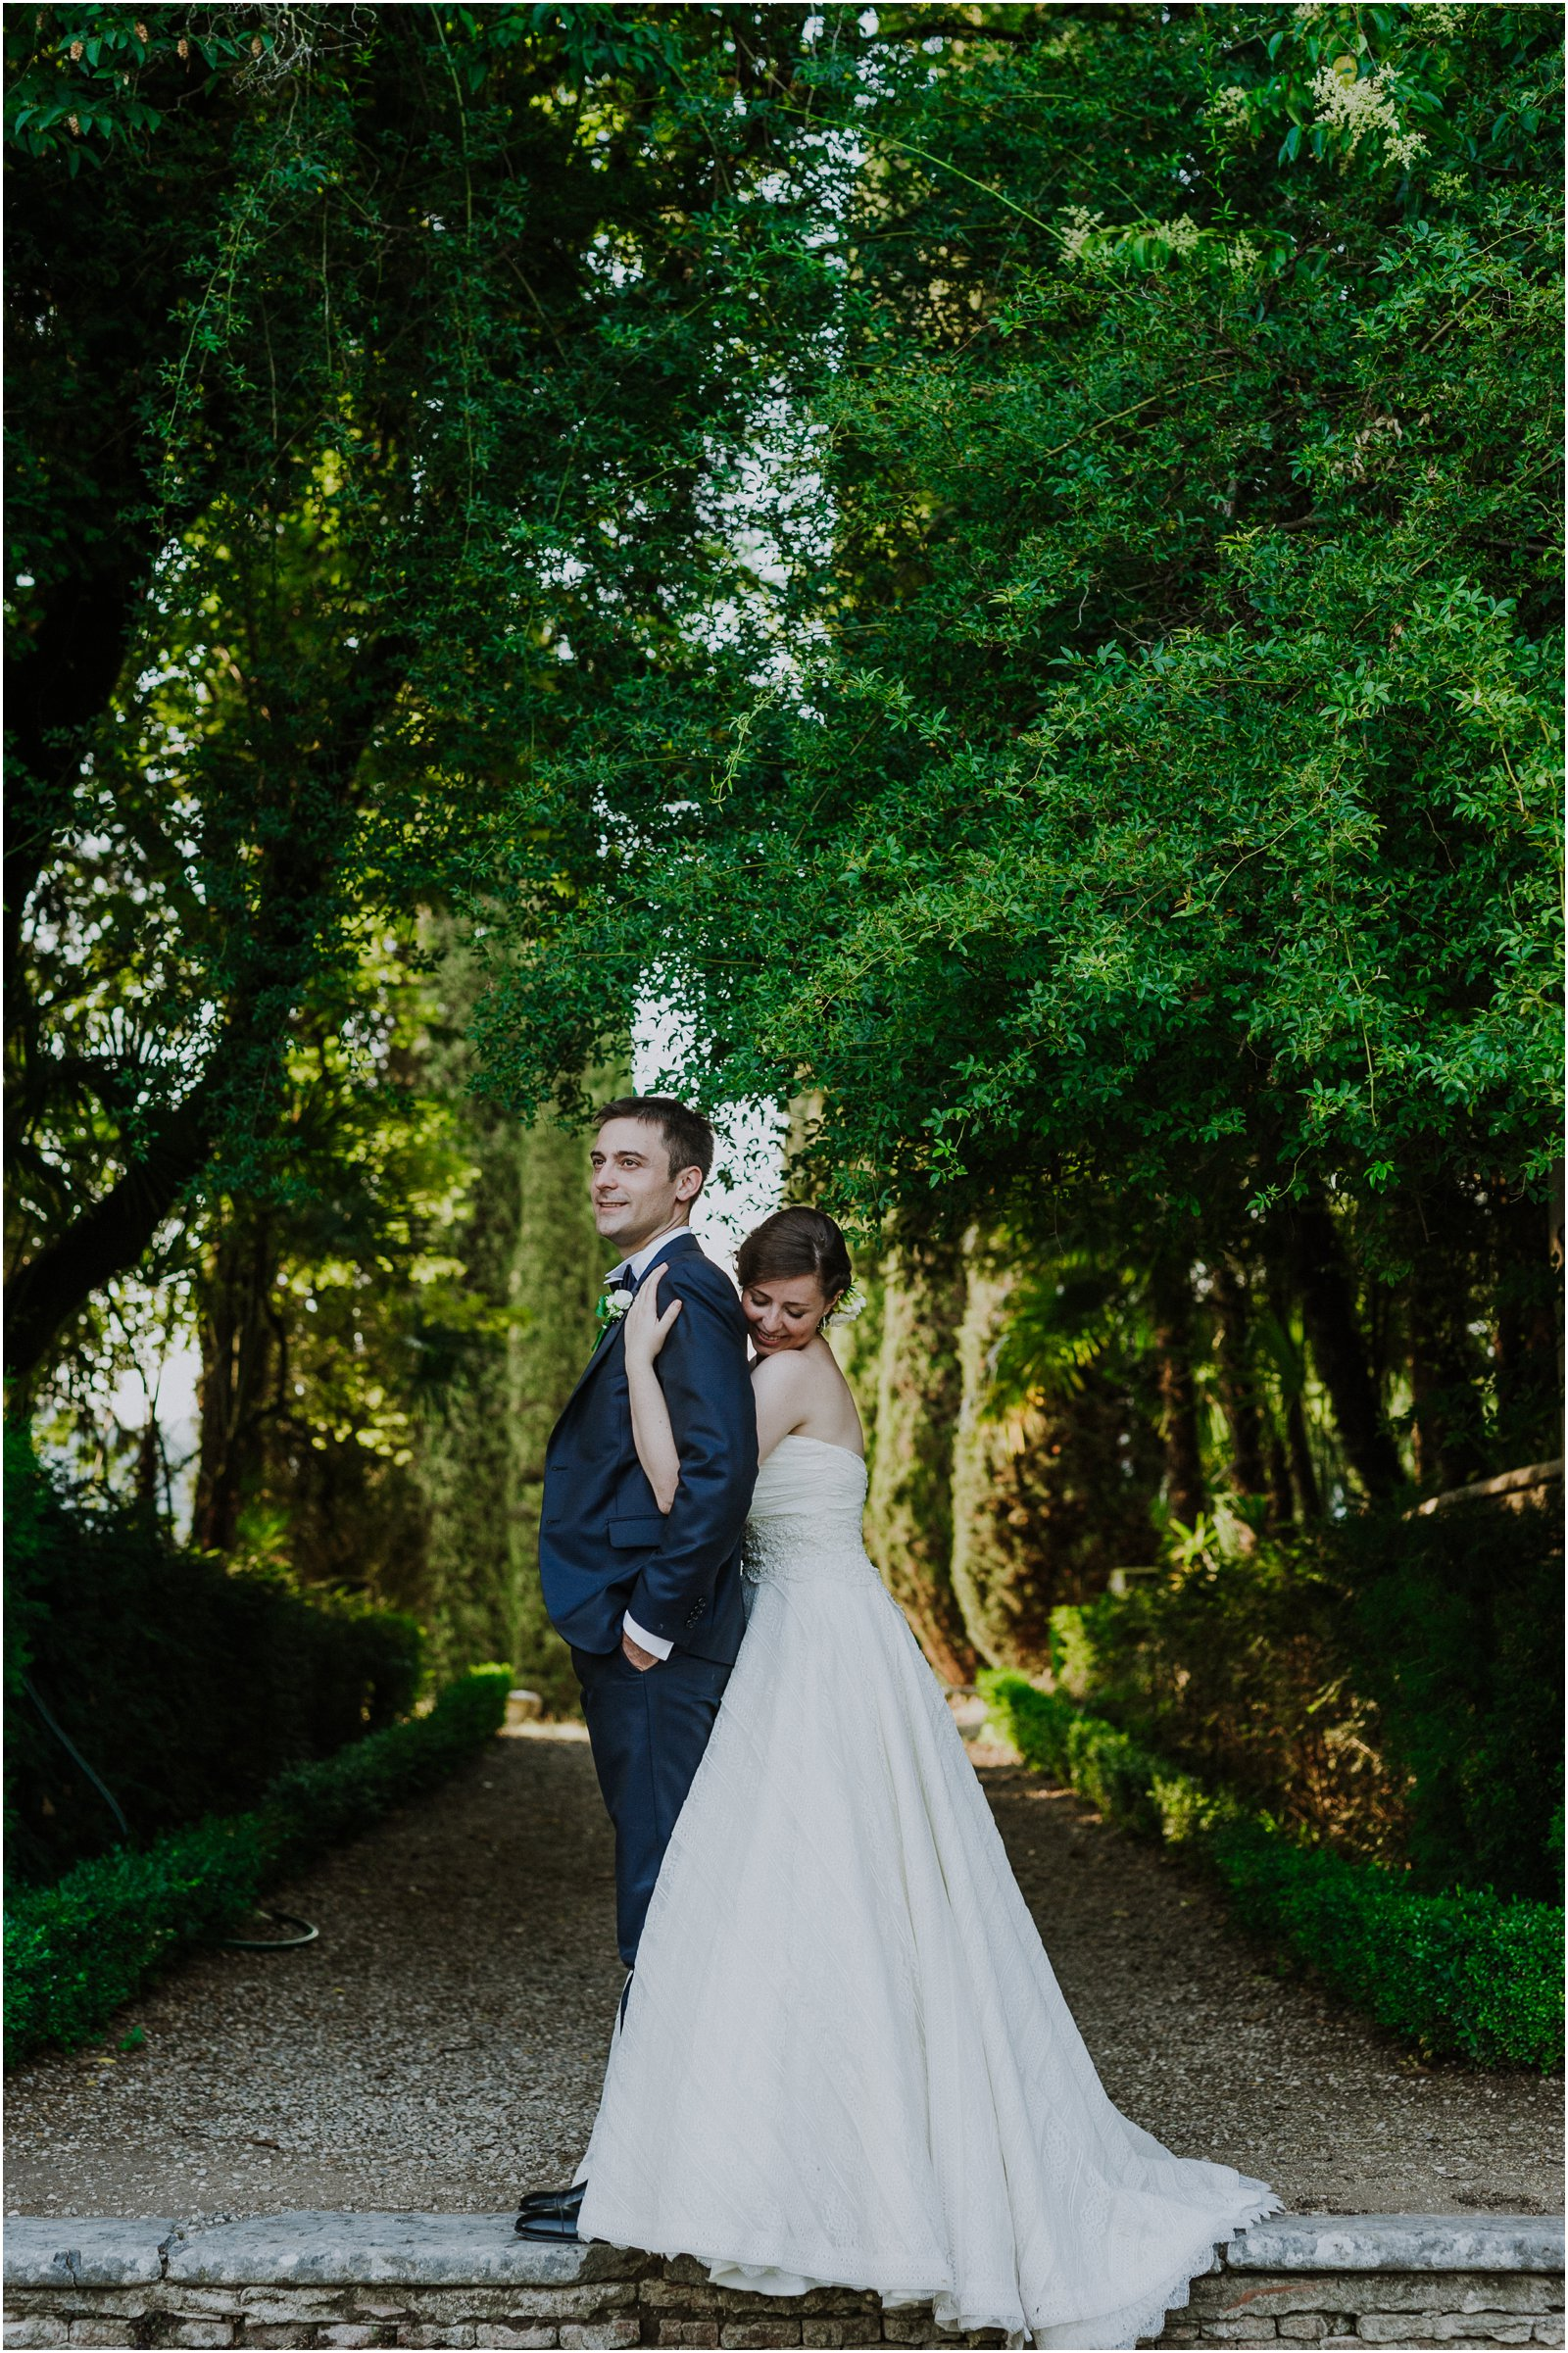 veronasposi foto e video matrimonio verona_0582